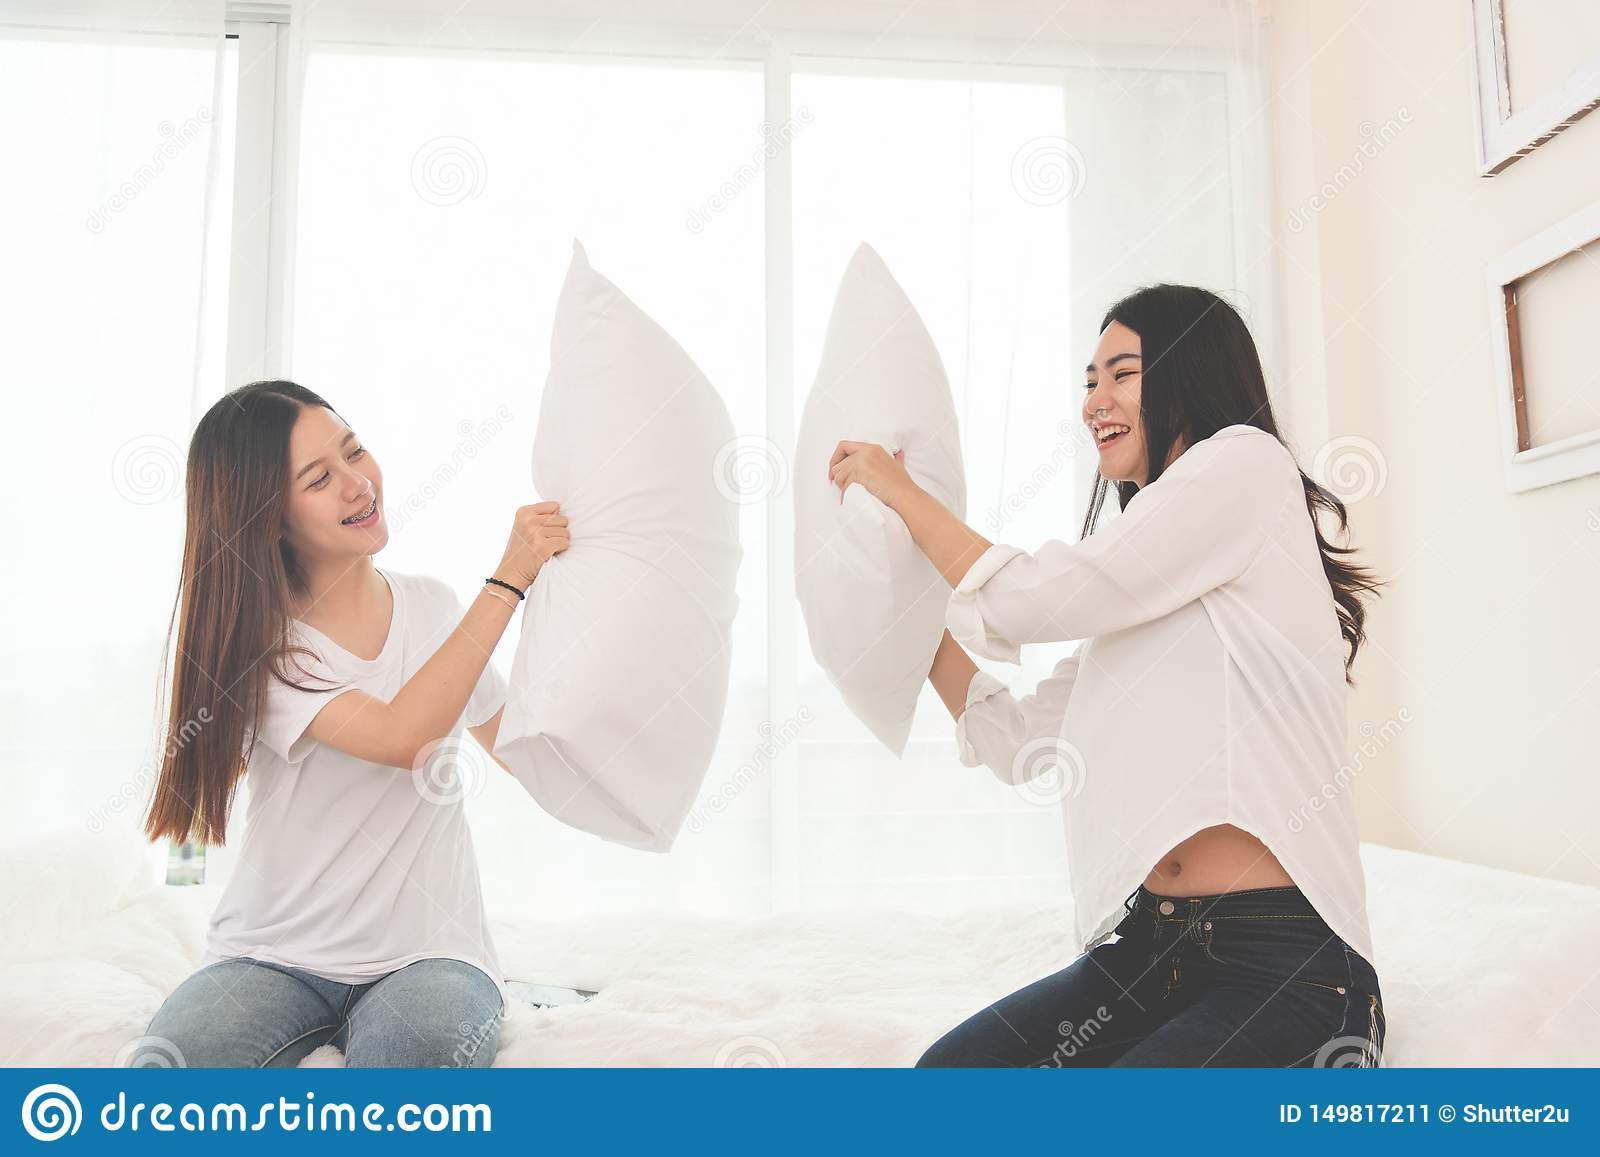 Two Asian doing pillow fight in bedroom. Lifestyles and People concept. Relation and friendship theme